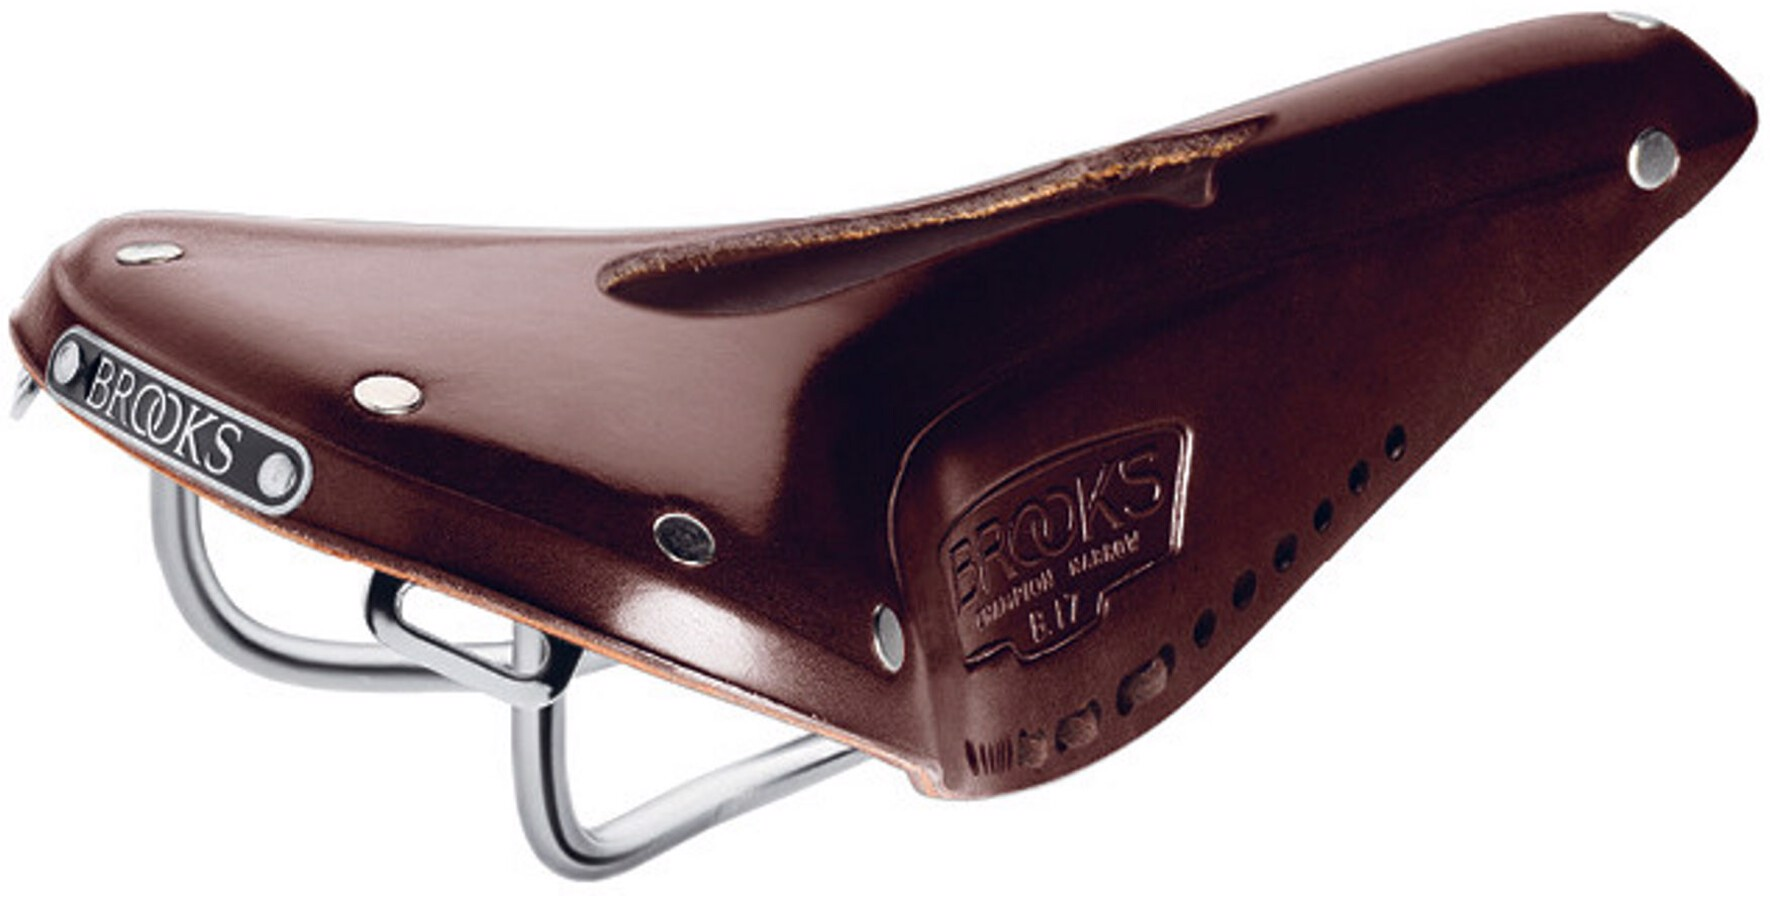 Yên xe đạp Brooks B17 Narrow Imperial Bike Saddle